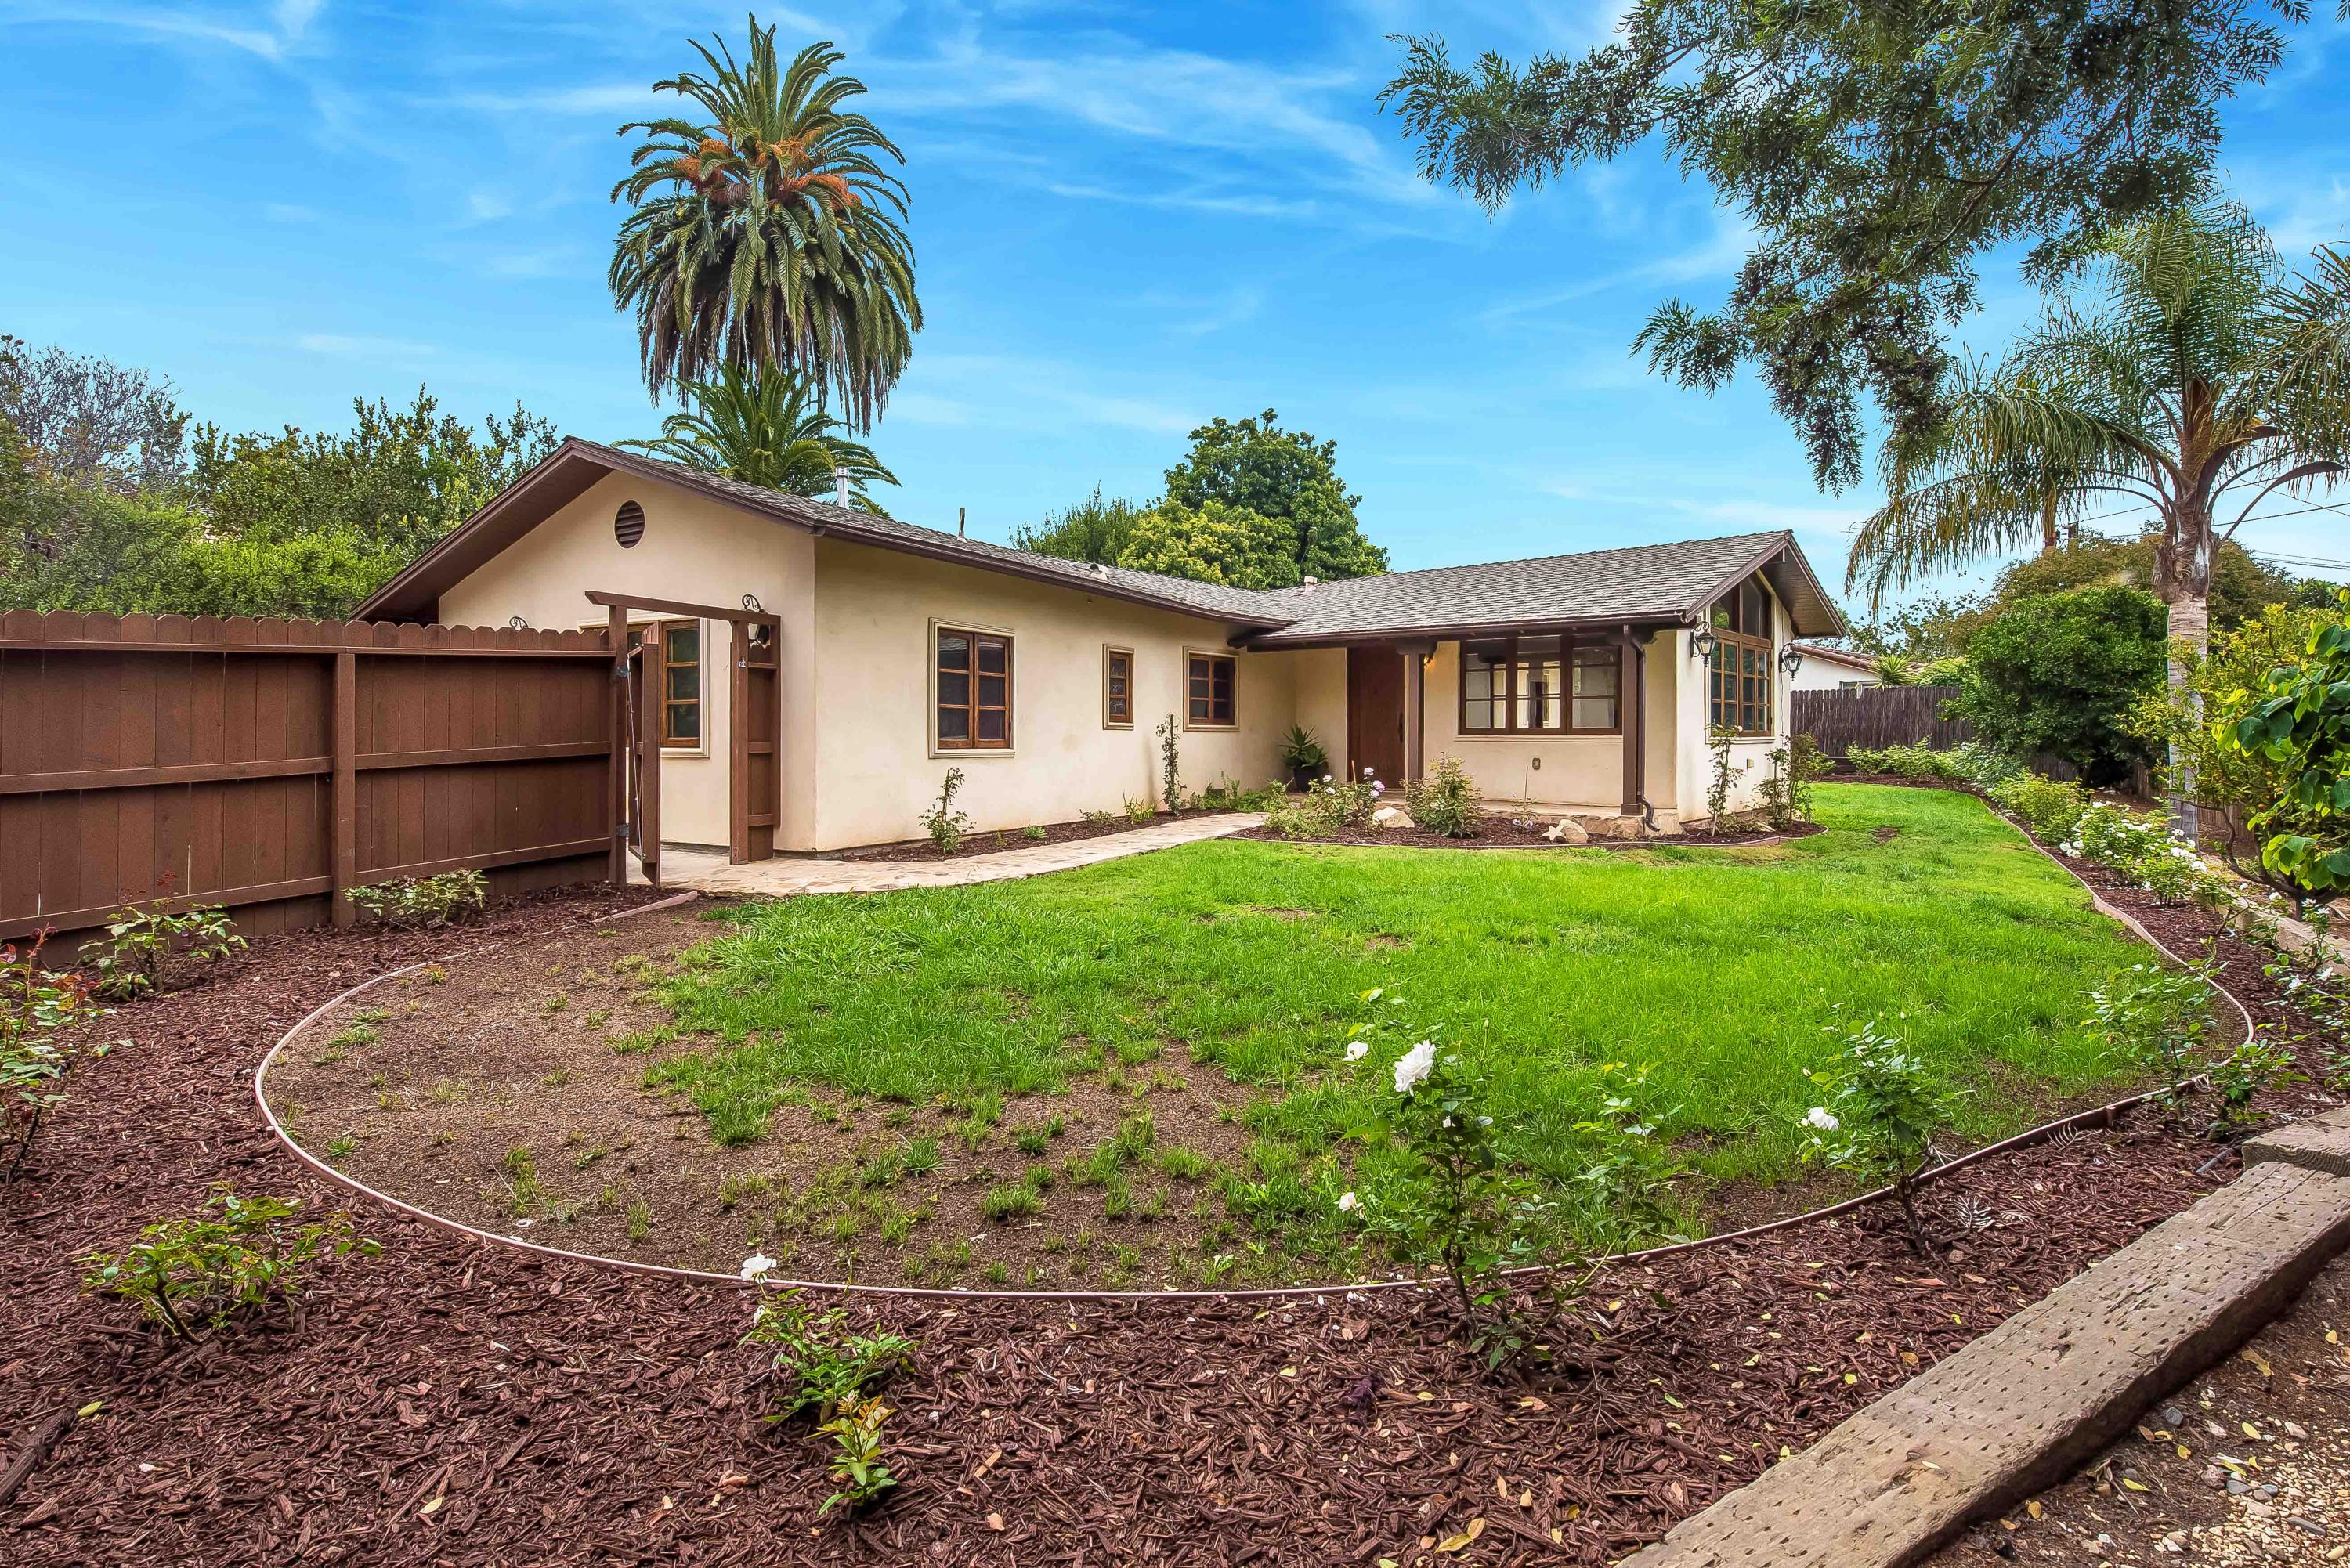 Property photo for 550 N La Cumbre Rd Santa Barbara, California 93110 - 17-2625